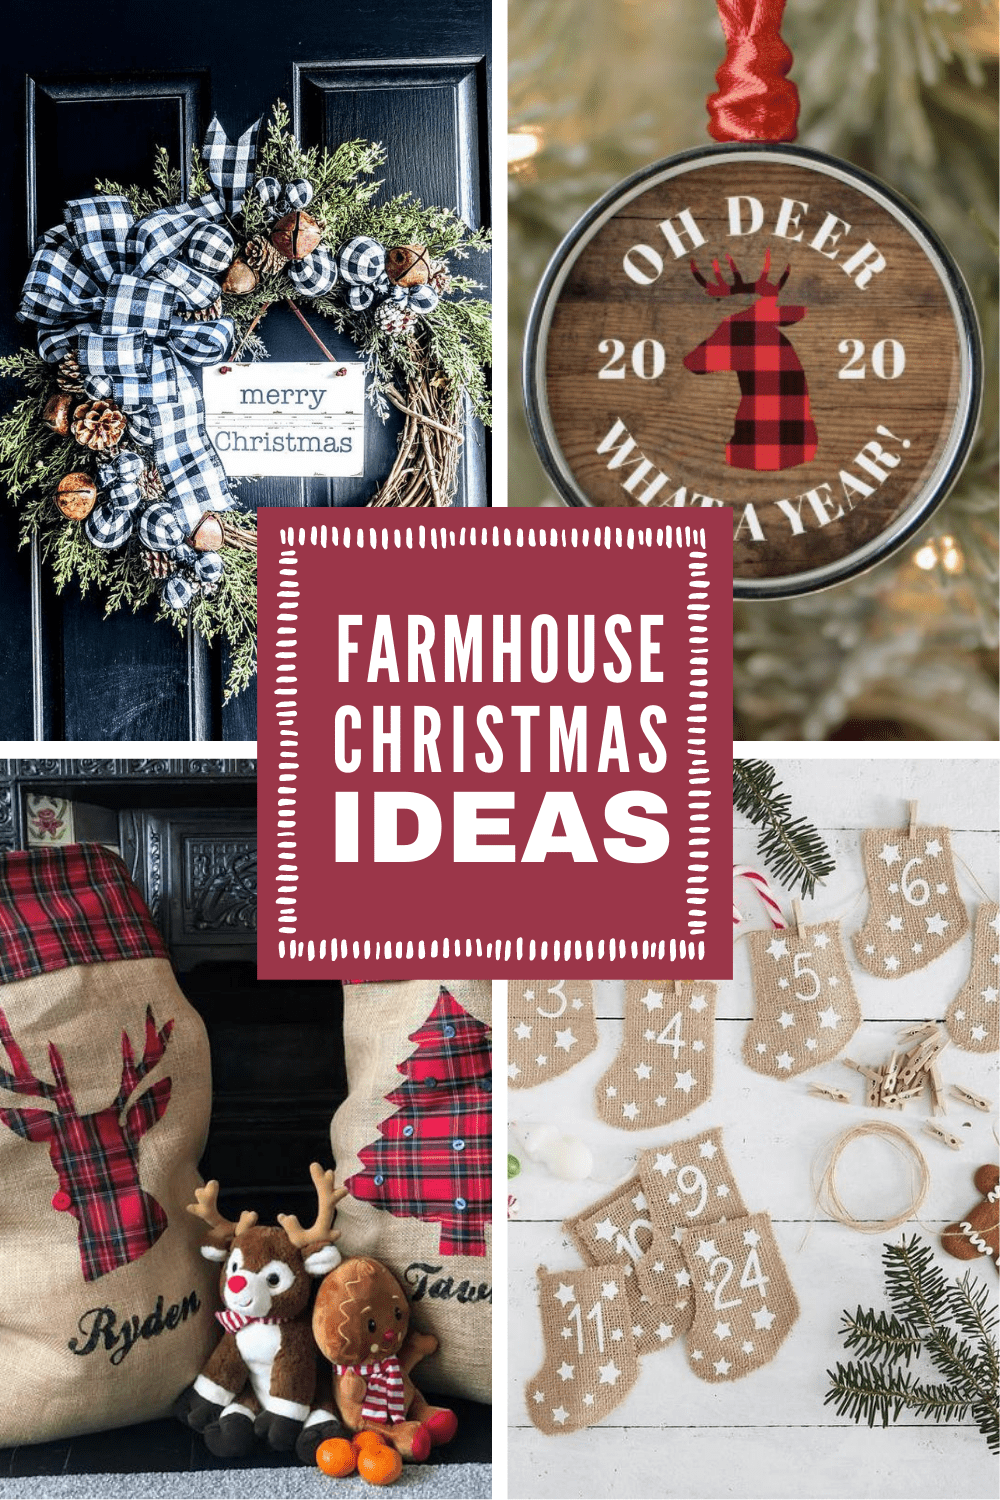 Channel your inner Joanna Gaines with these wonderful Farmhouse Christmas decor ideas... Fixer Upper inspired wreaths, rustic Holiday signs, farmhouse pillows and even a Hot Cocoa Bar! They're all gorgeous and just what you need to festive up your home this Christmas!